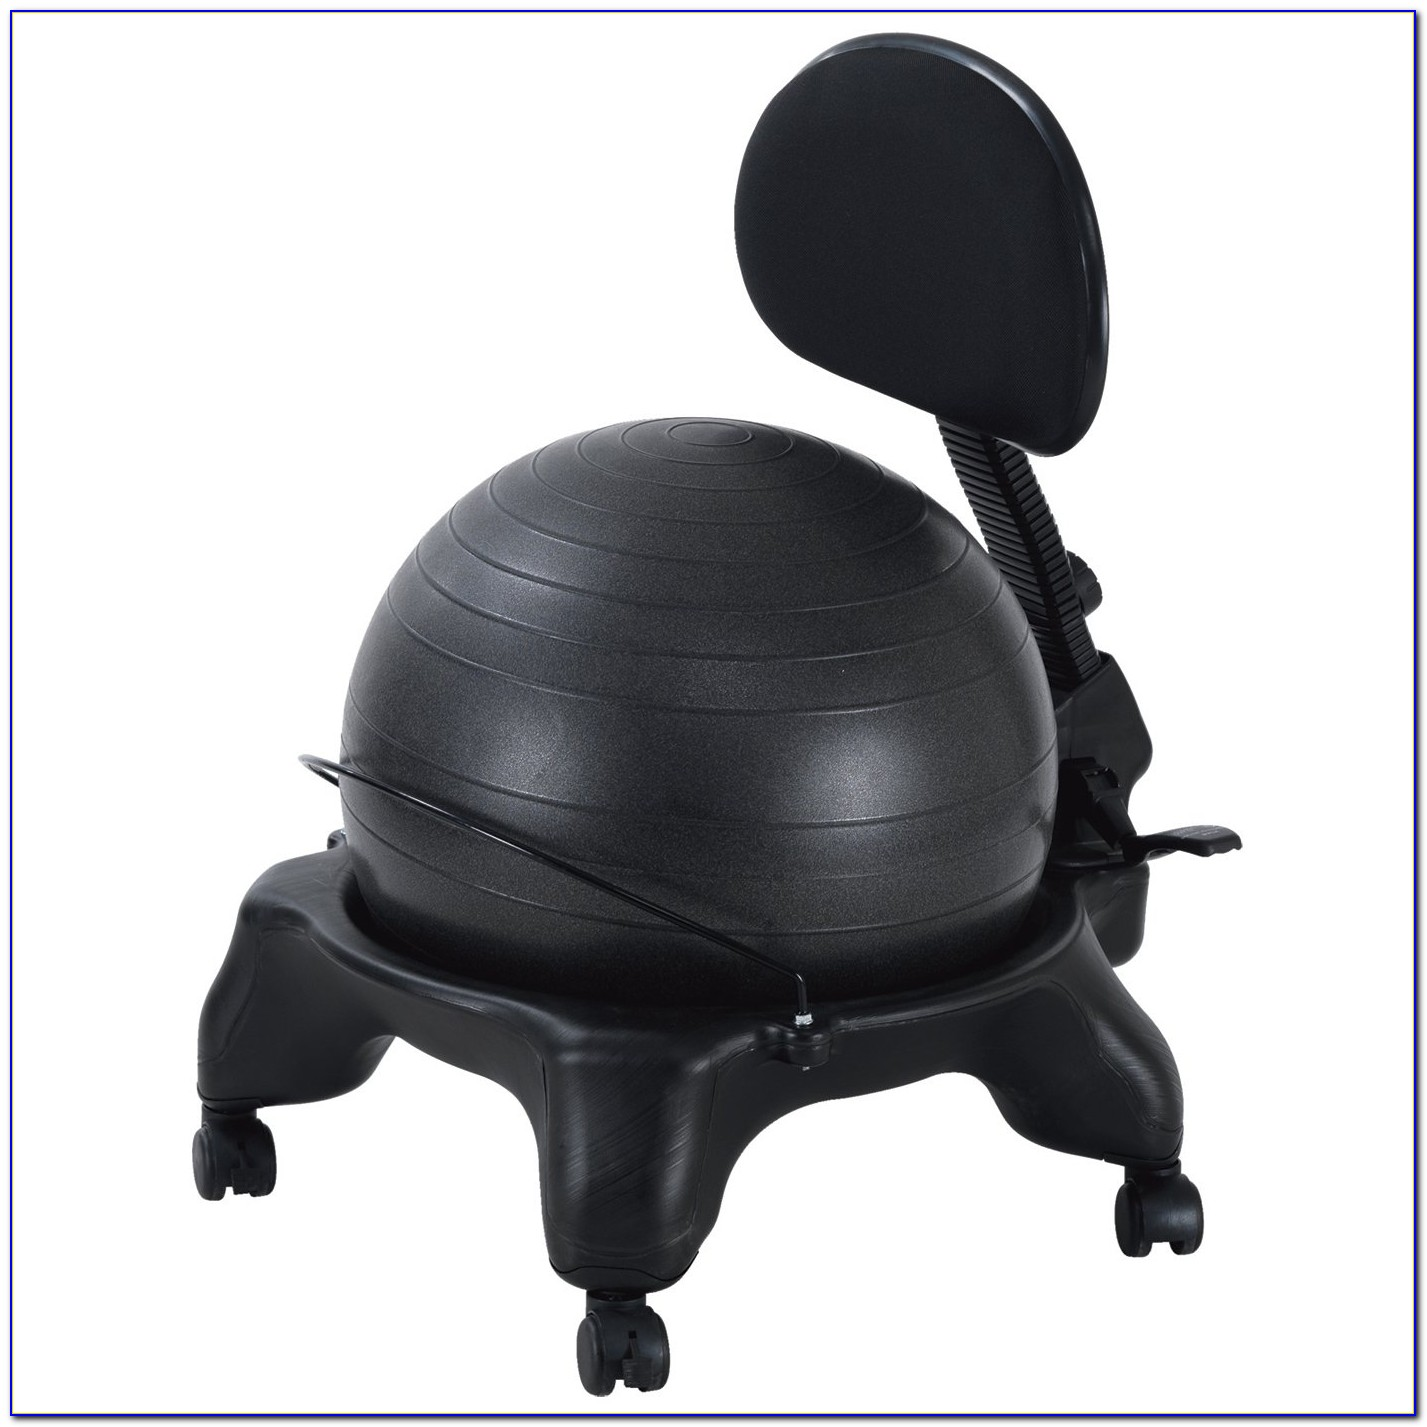 Exercise Ball As Office Chair Benefits